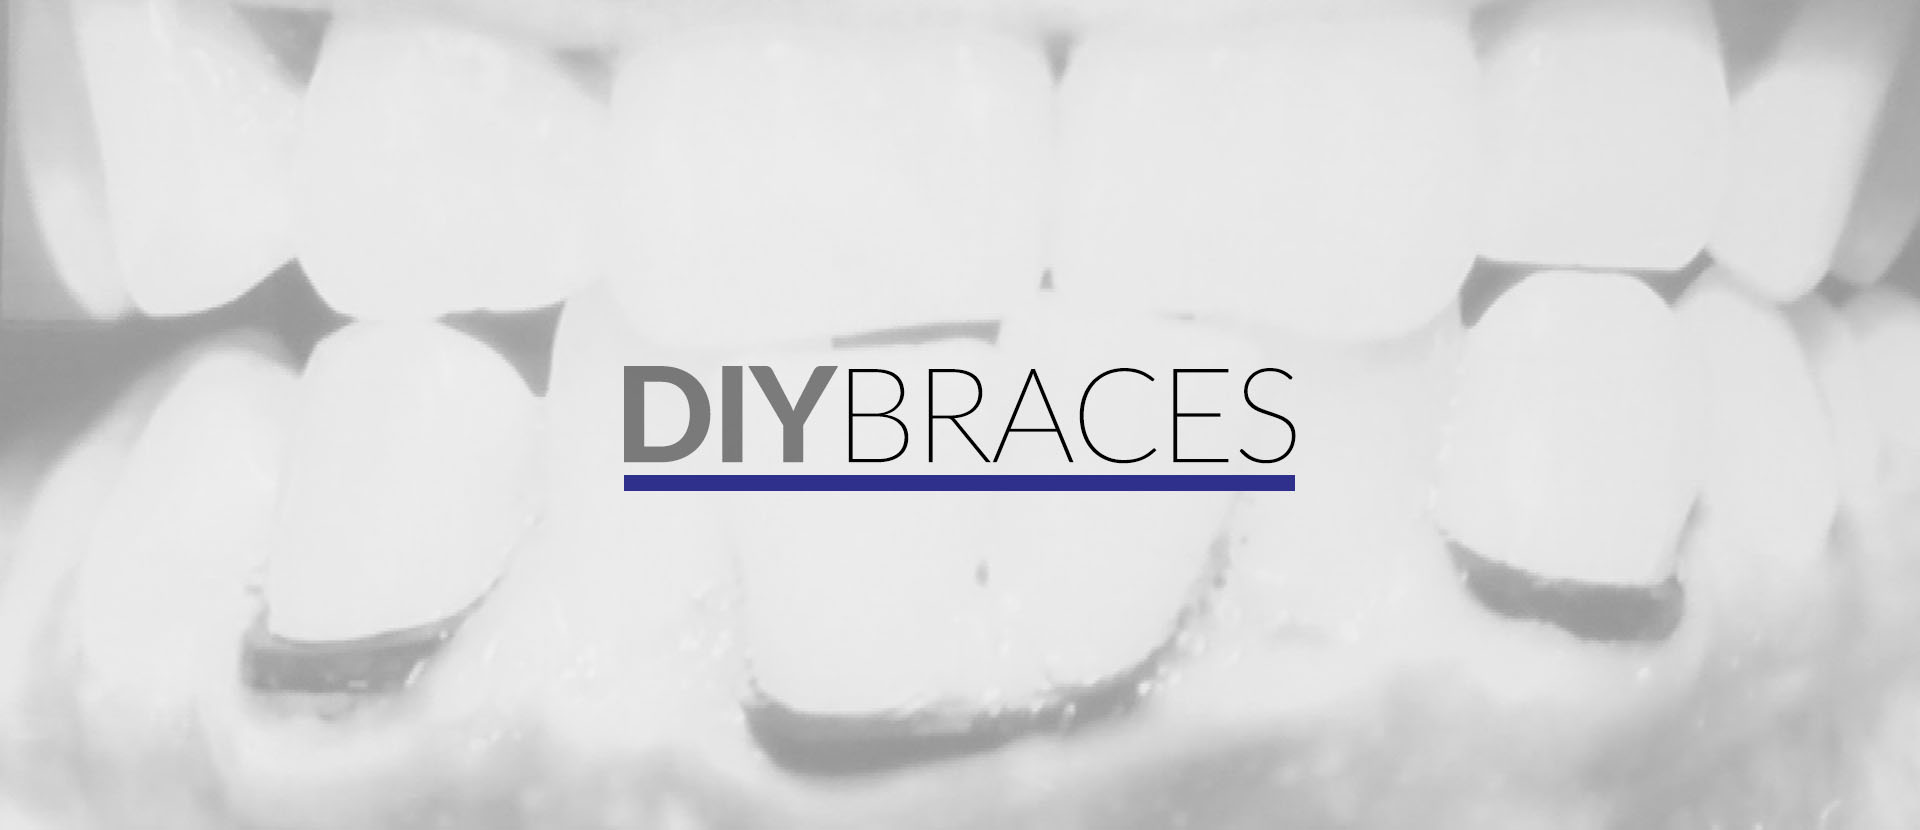 Feature diy braces are do it yourself videos online that supposedly teach you how to fix your teeth on your own but the doctors also say none of the methods are safe solutioingenieria Images